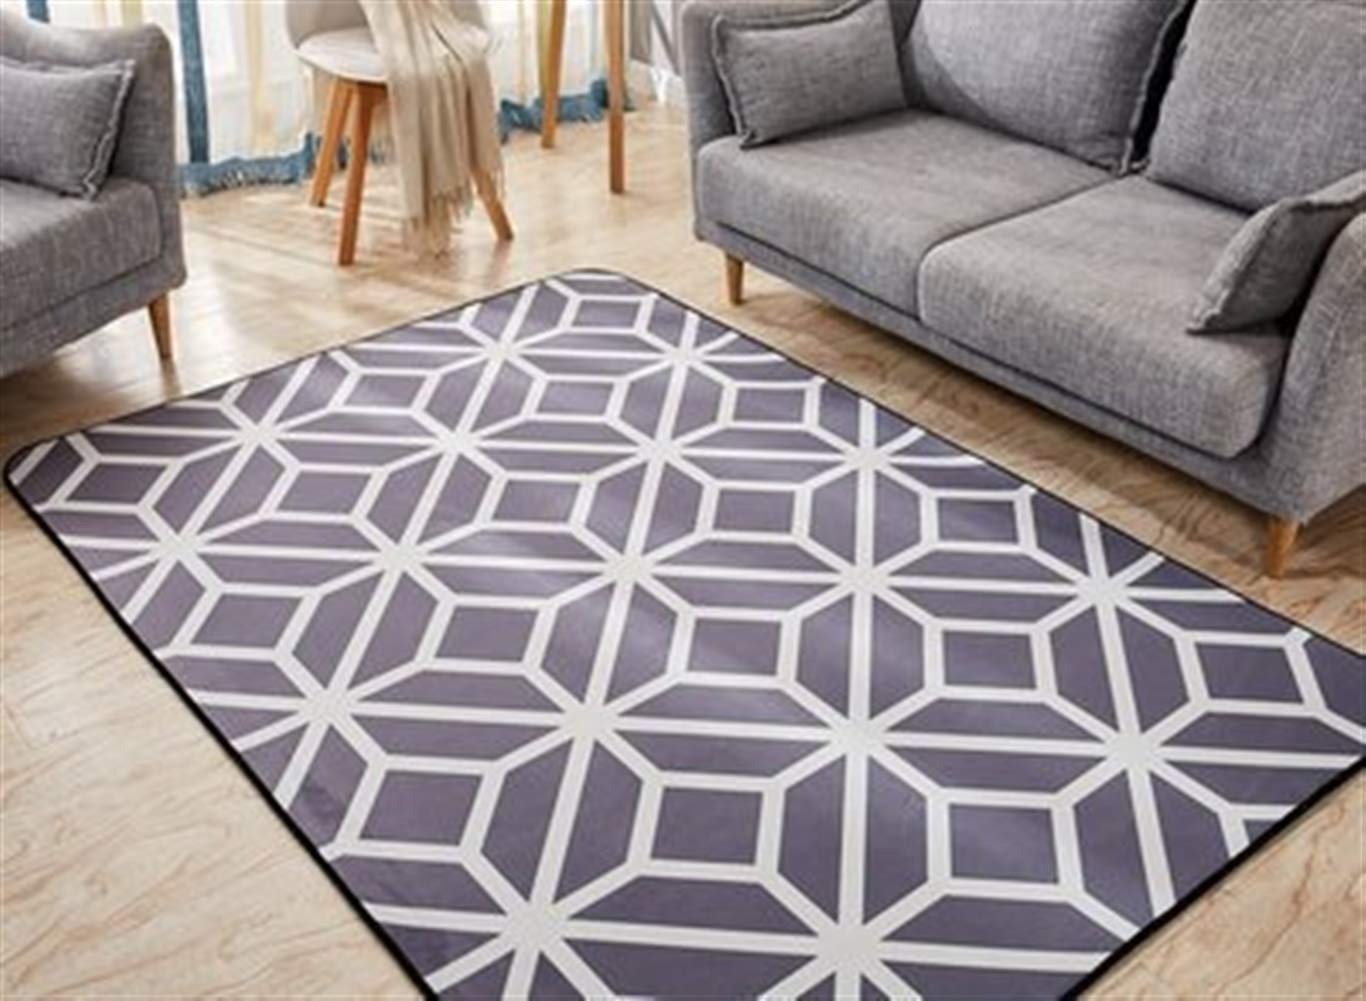 Design Tapis Asiatique Ommda Moderne Anti Salon Salon Tapis lJ31TFcK